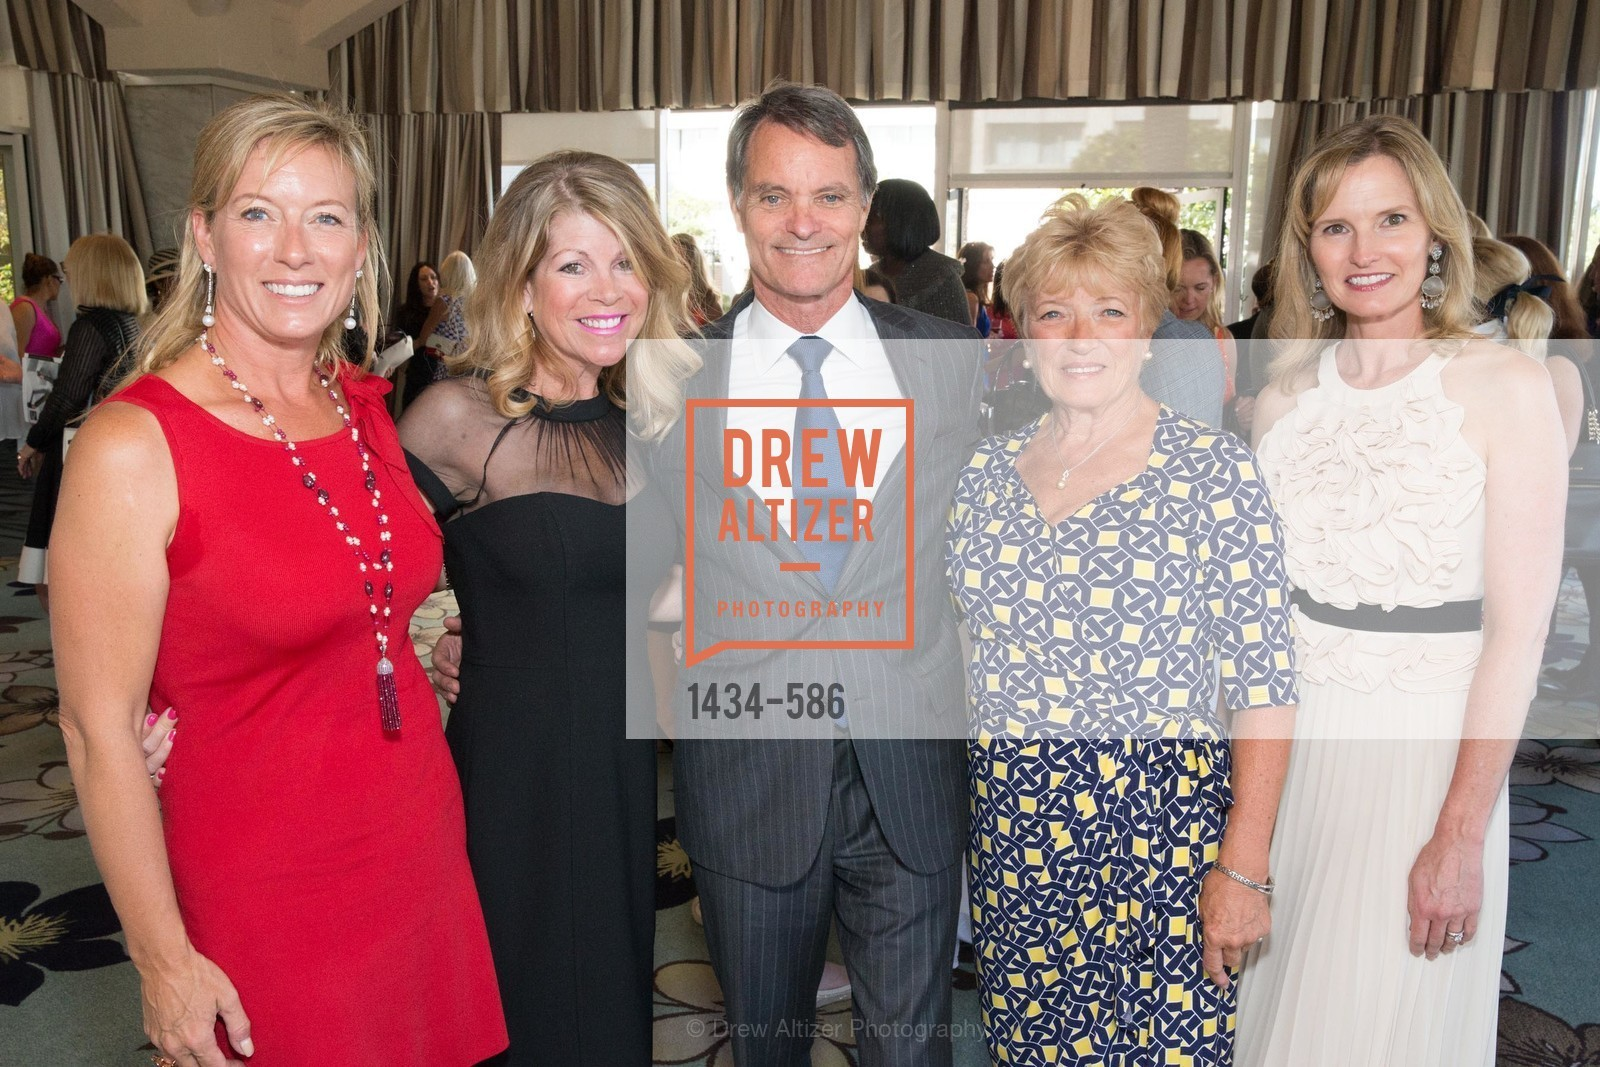 Rhonda Mahendroo, Lori Sullivan, Gary Sullivan, Claudia Bray, Rachel Crawford, 2014 Bay Area ARTHRITIS AUXILLIARY Benefit & Fashion Show, US, October 2nd, 2014,Drew Altizer, Drew Altizer Photography, full-service agency, private events, San Francisco photographer, photographer california